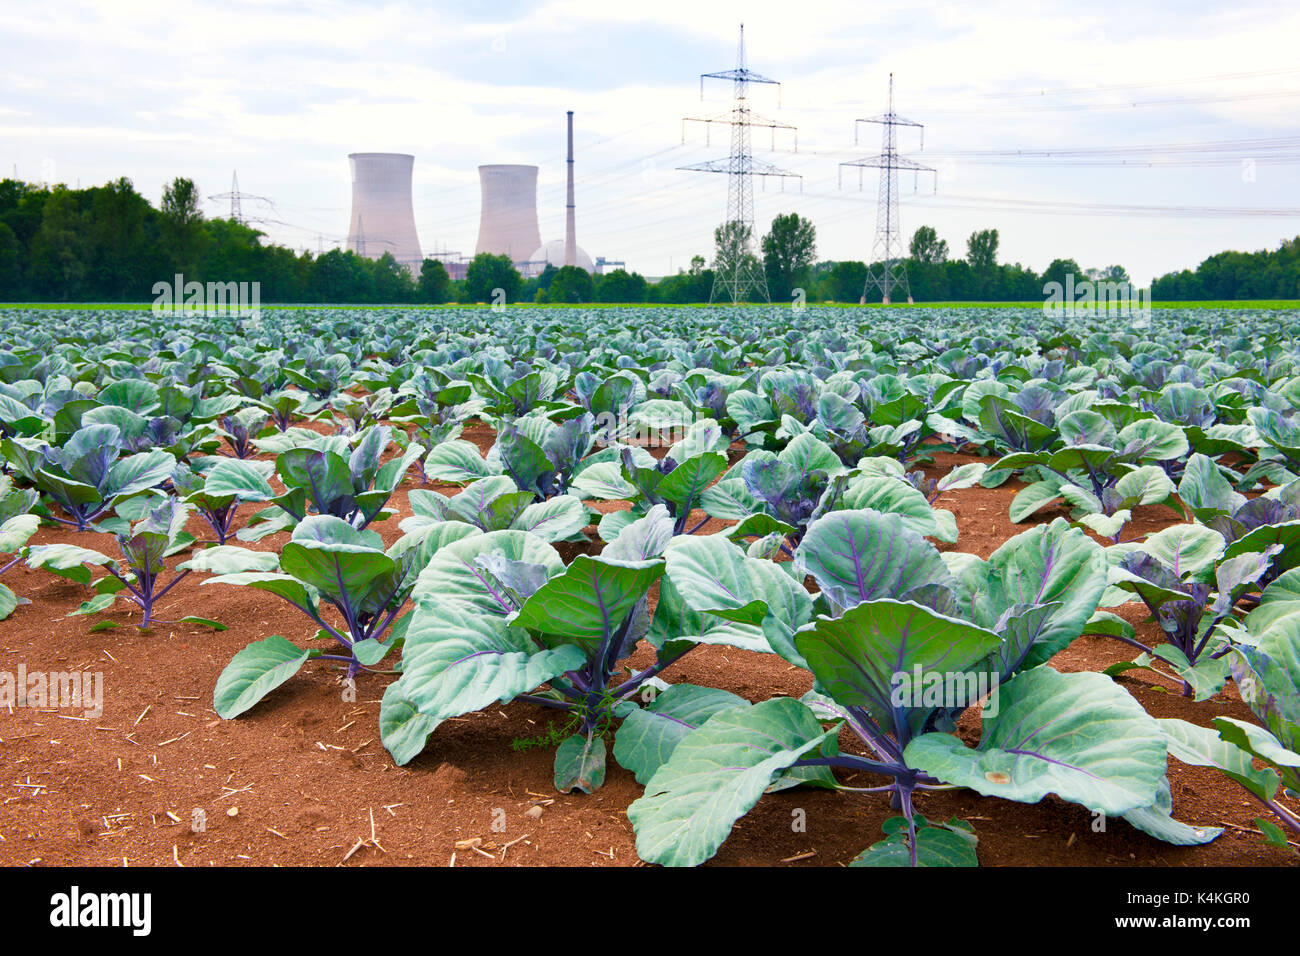 Grafenrheinfeld nuclear power station, field with red cabbage, Lower Franconia, Bavaria, Germany - Stock Image